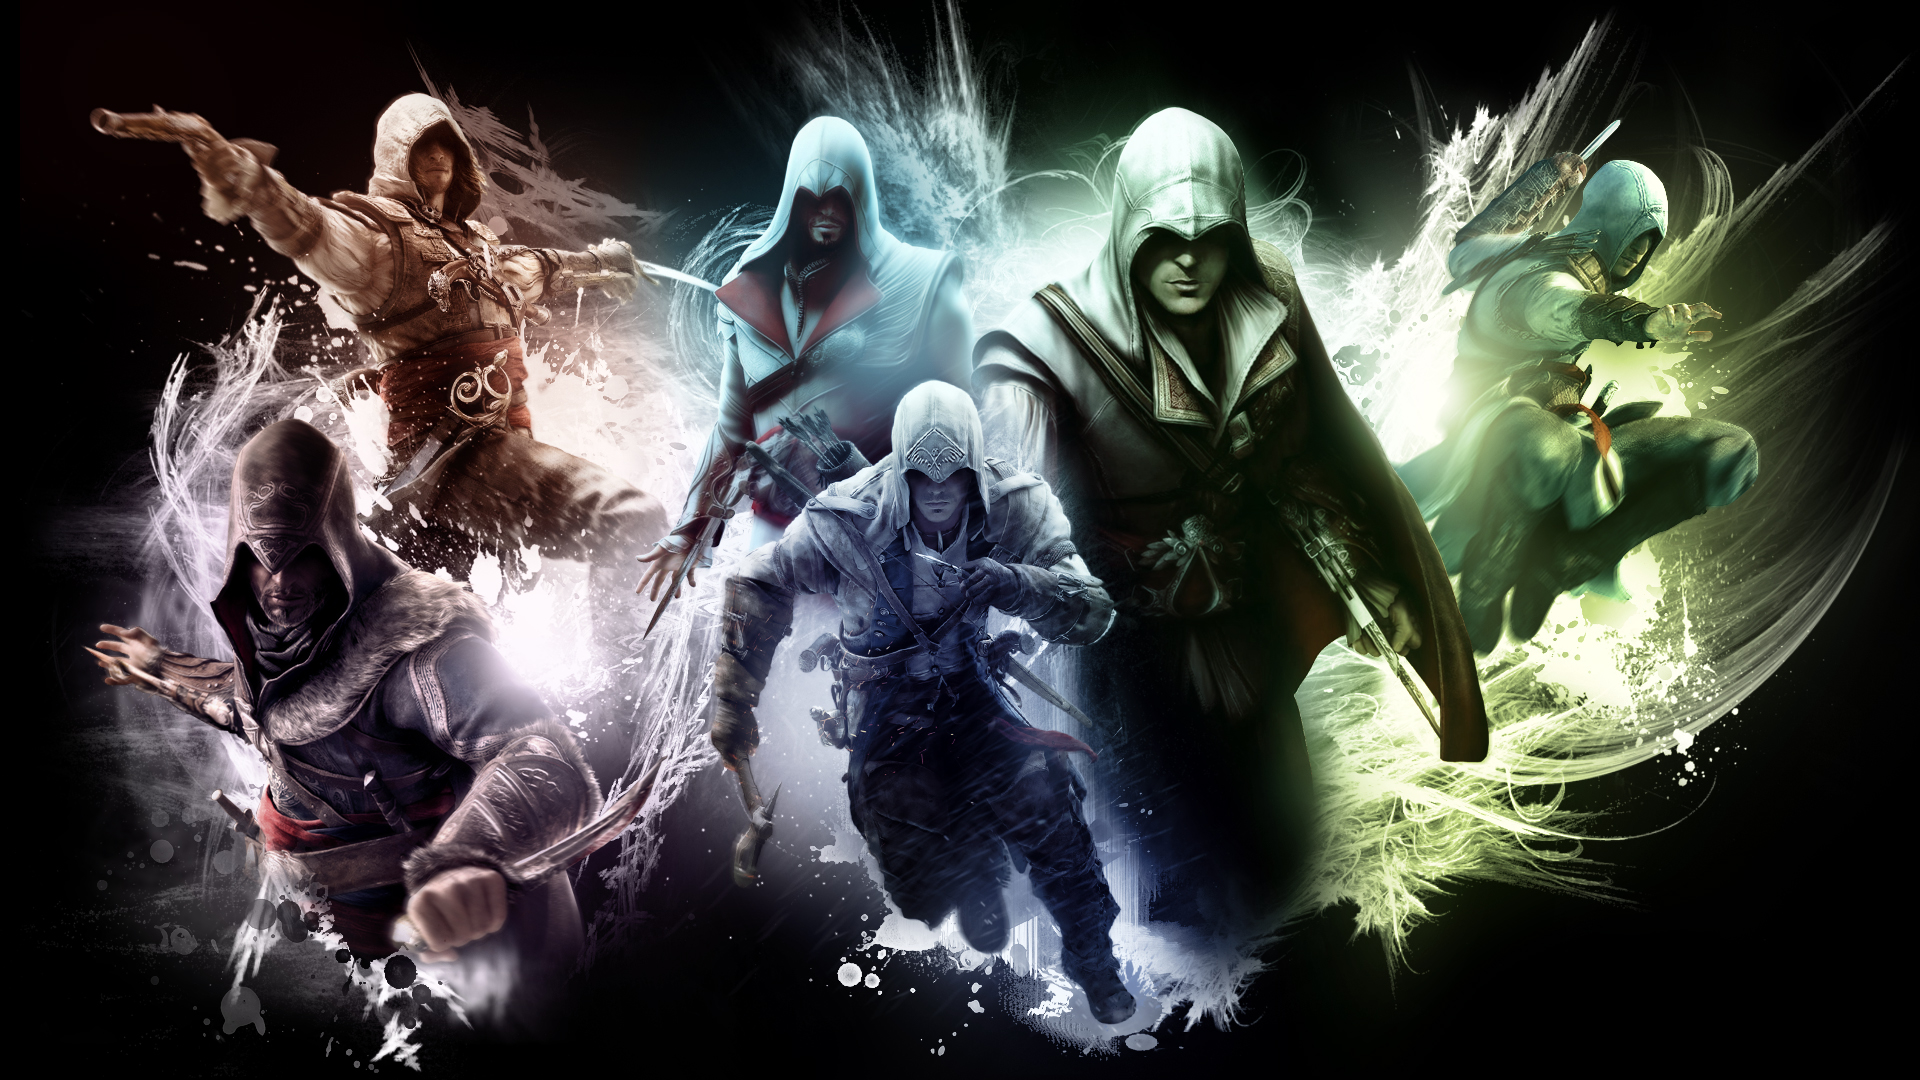 The Creed Assassin S Creed Wallpaper By Rocklou On Deviantart